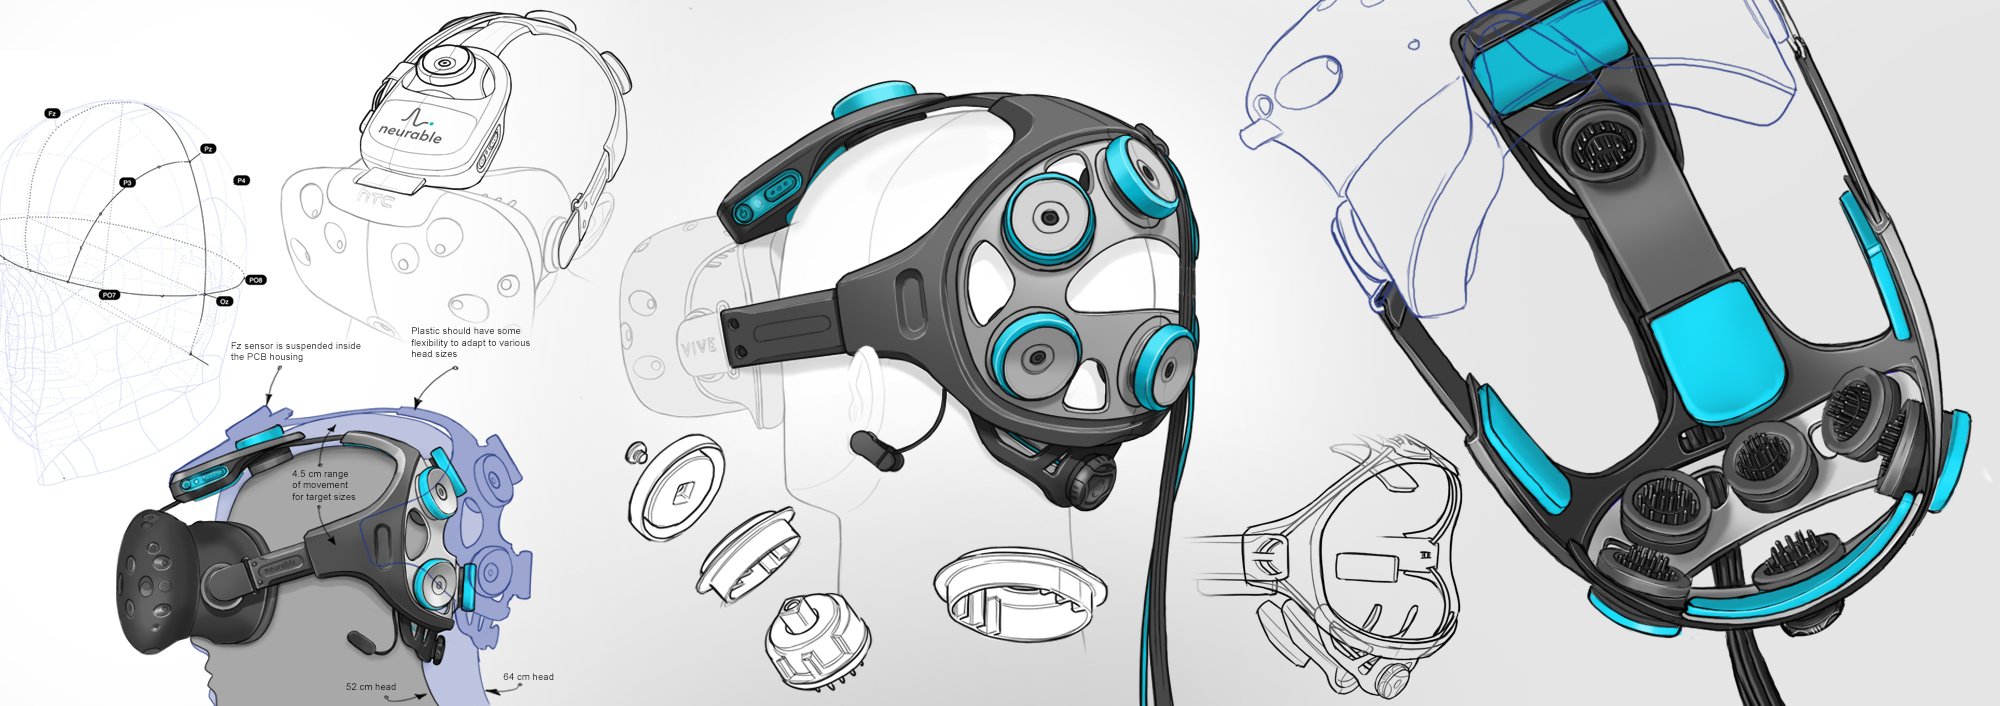 Neurable_headset_01a